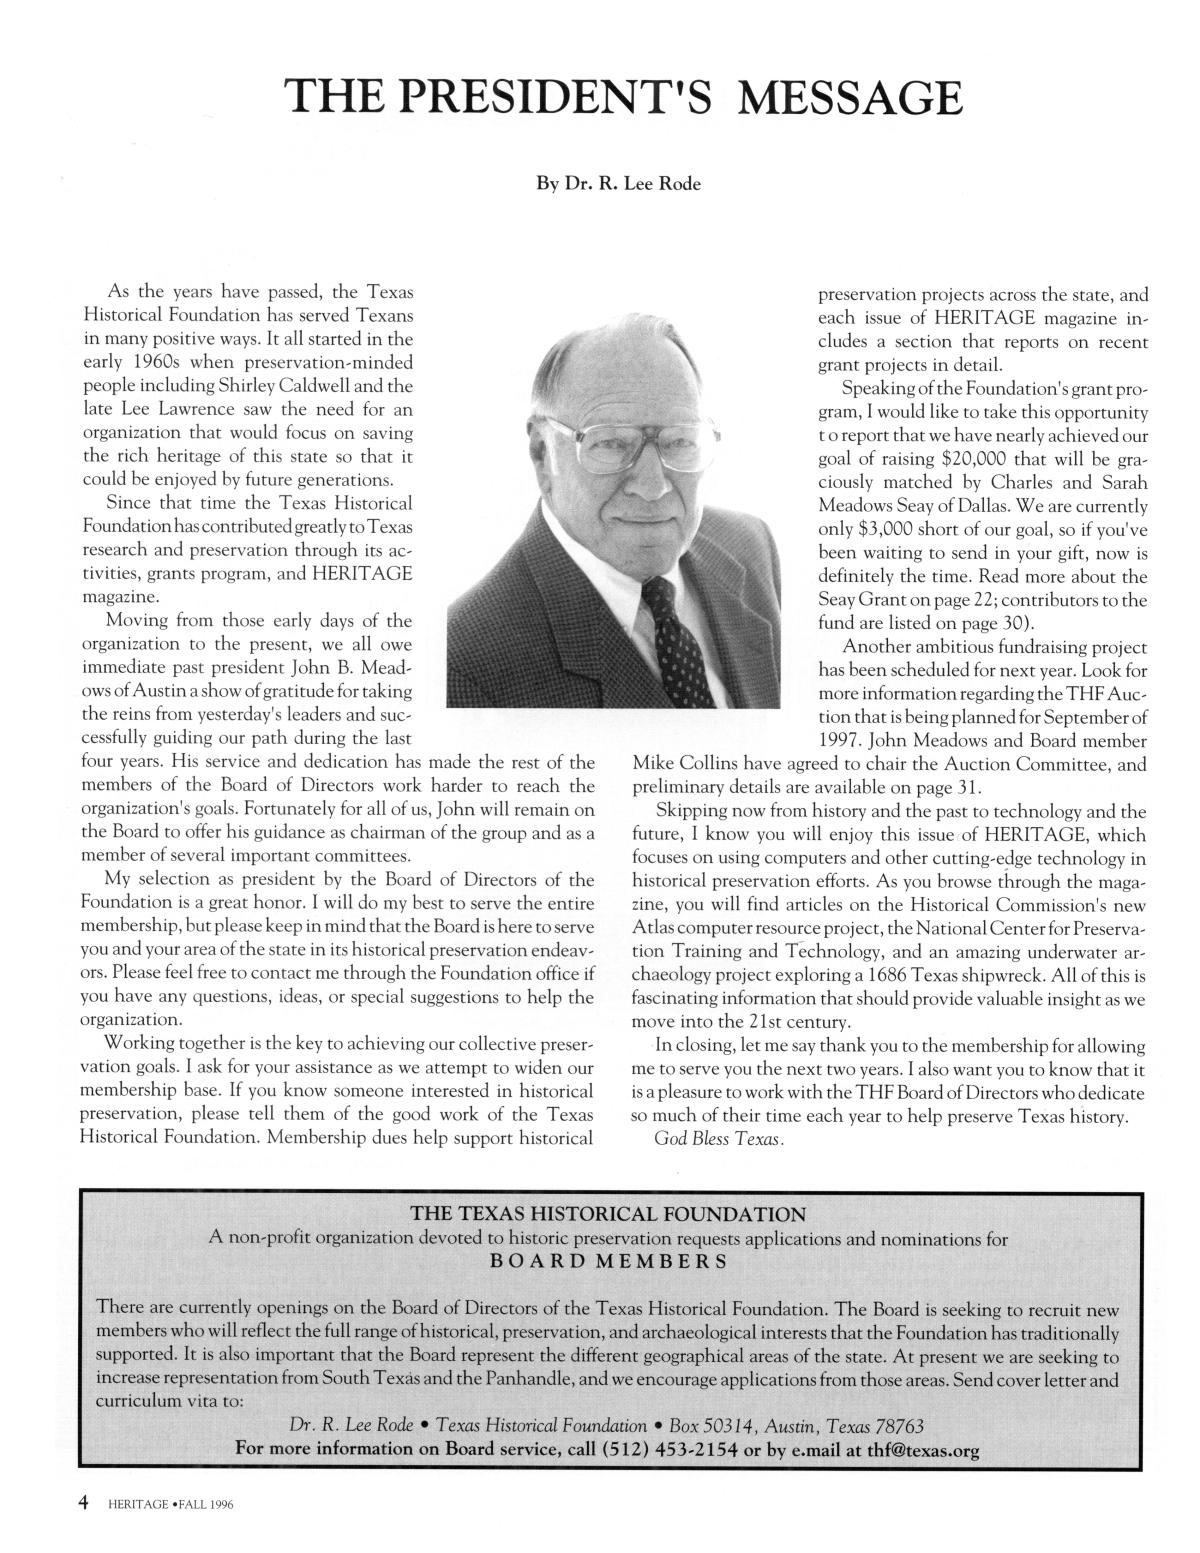 Heritage, Volume 14, Number 4, Fall 1996                                                                                                      4